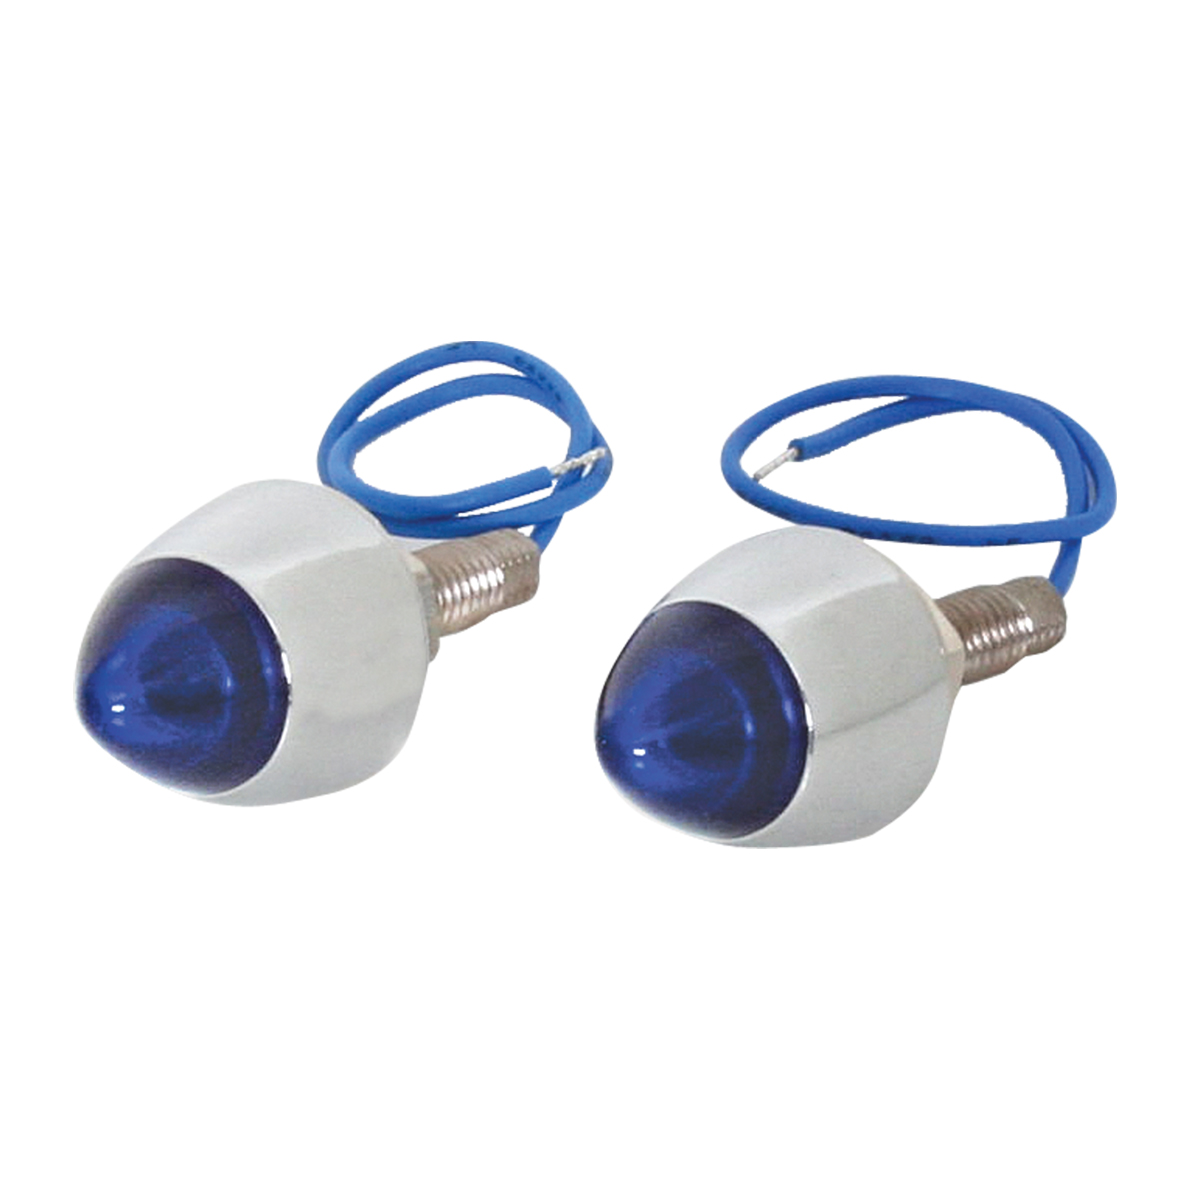 LED Lighted Bullet Fastener Set of 2 - Blue